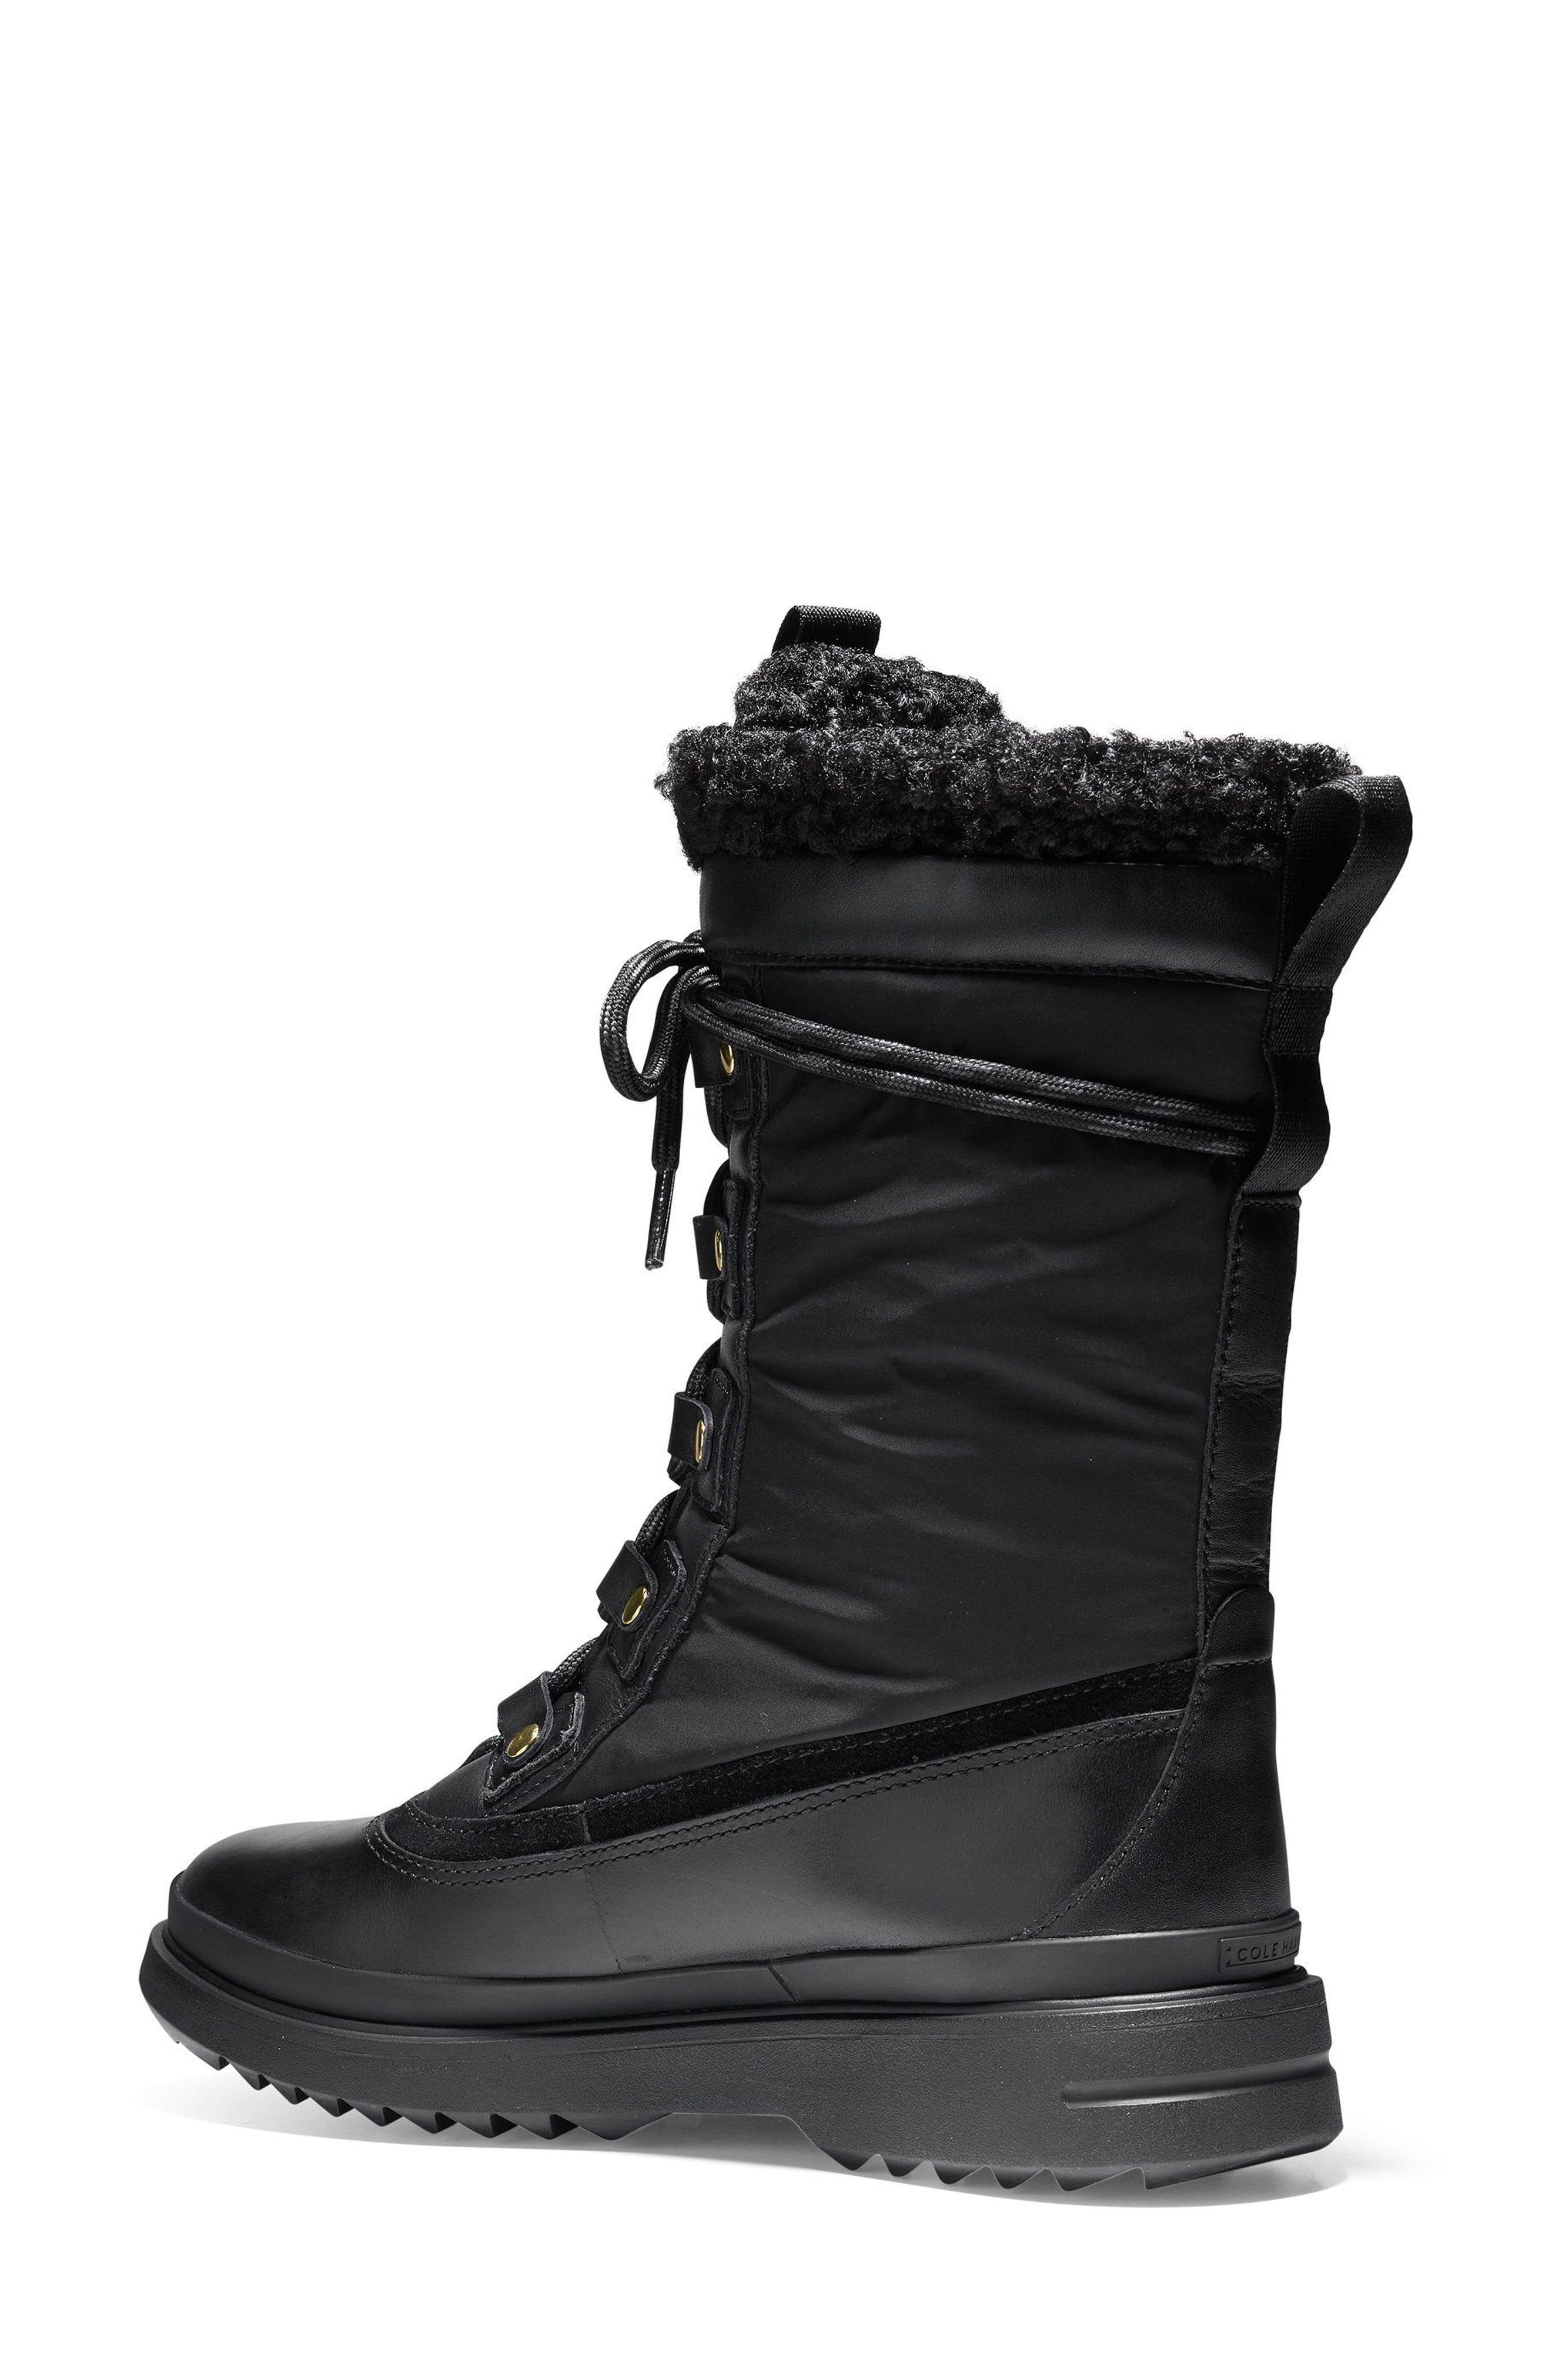 Millbridge Waterproof Boot,                             Alternate thumbnail 4, color,